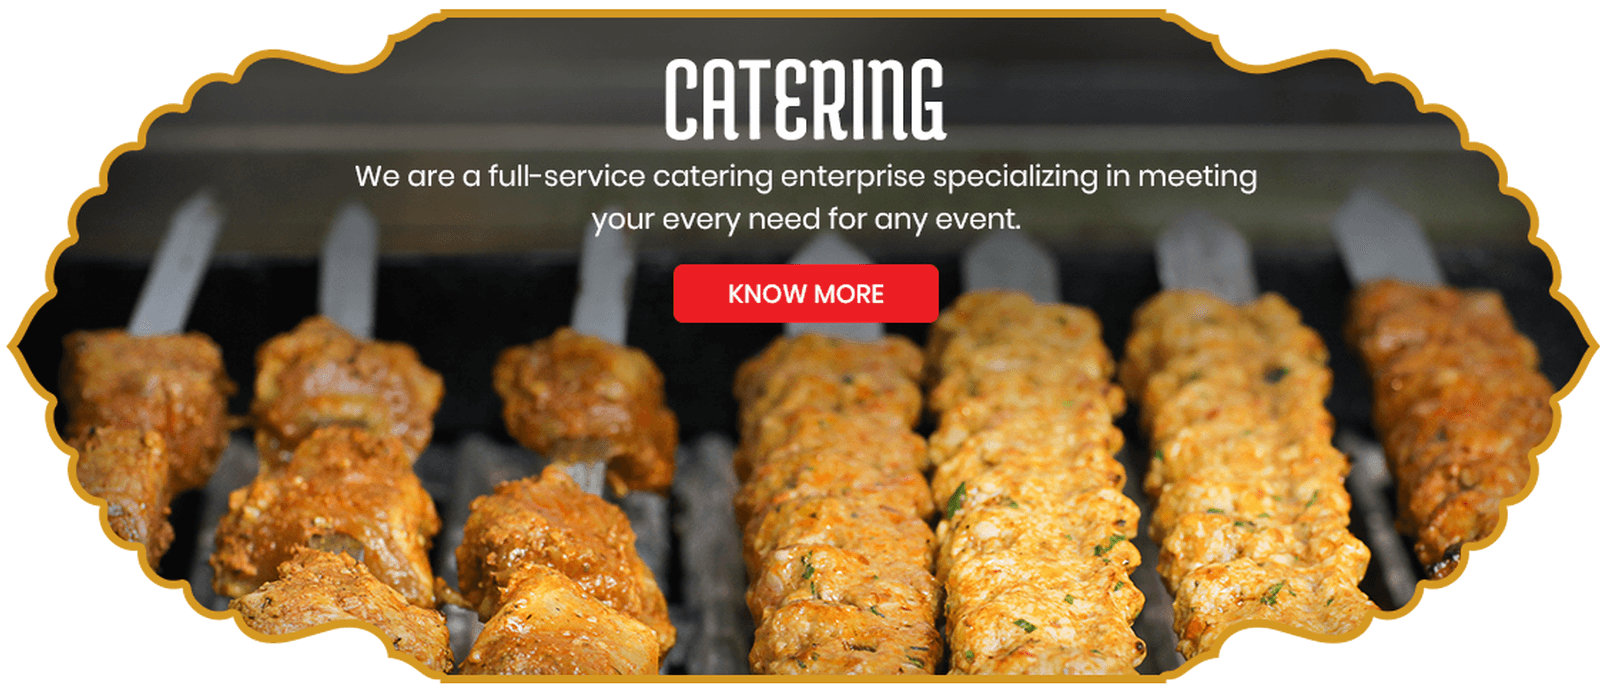 We are a Full-Service Catering Enterprise Specializing in Meeting Your Every Need for any Event